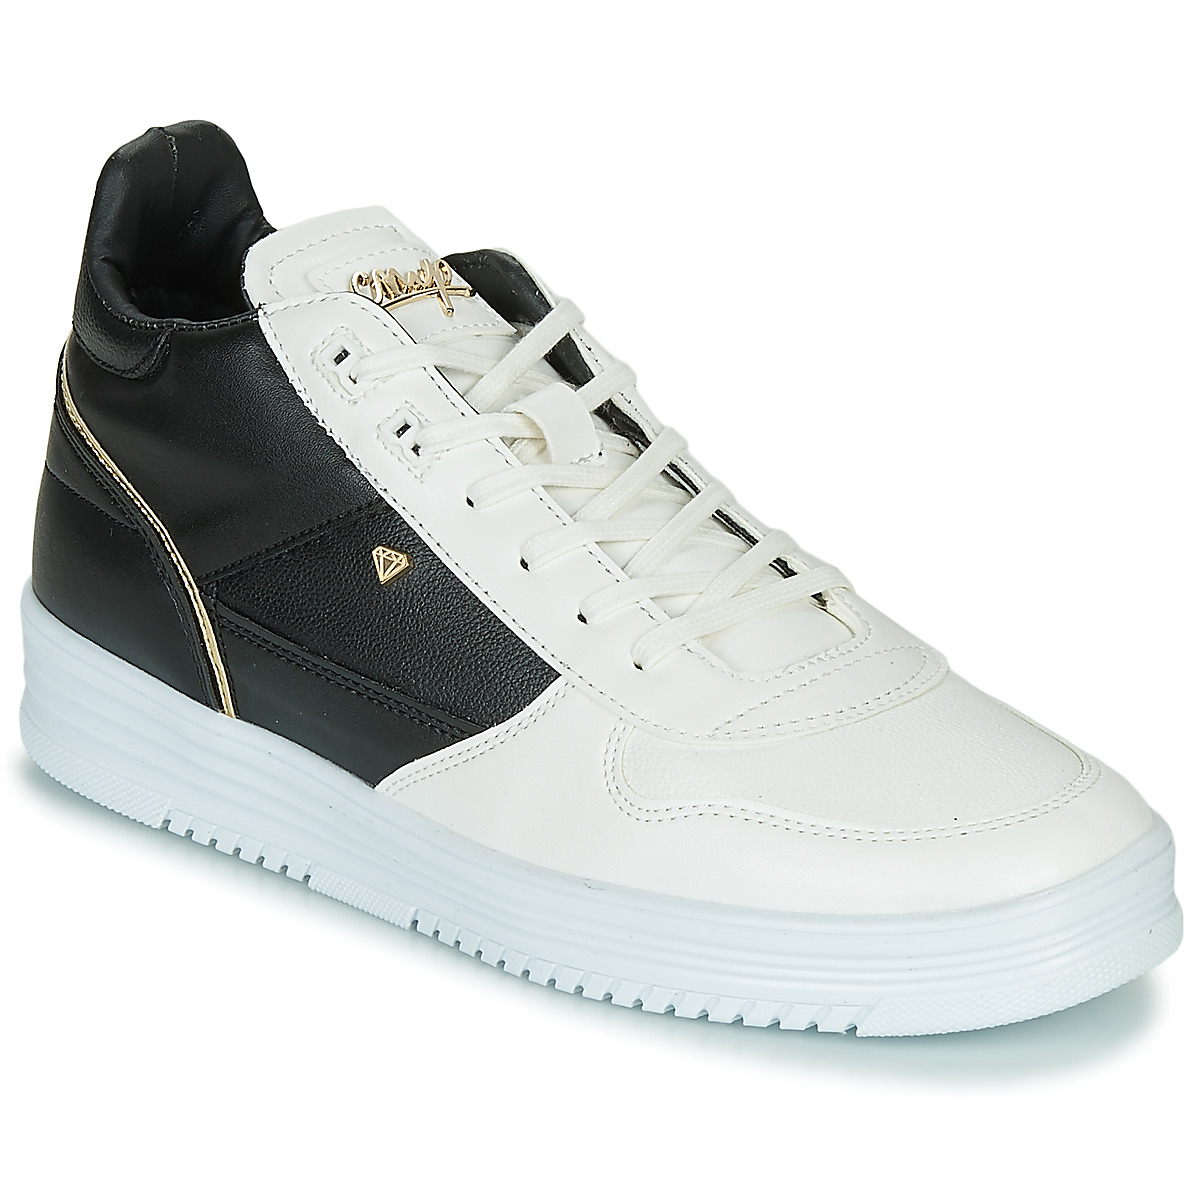 Sneakers alte uomo Cash Money  CMS72-LUXURY  Bianco Cash Money 3700459388762